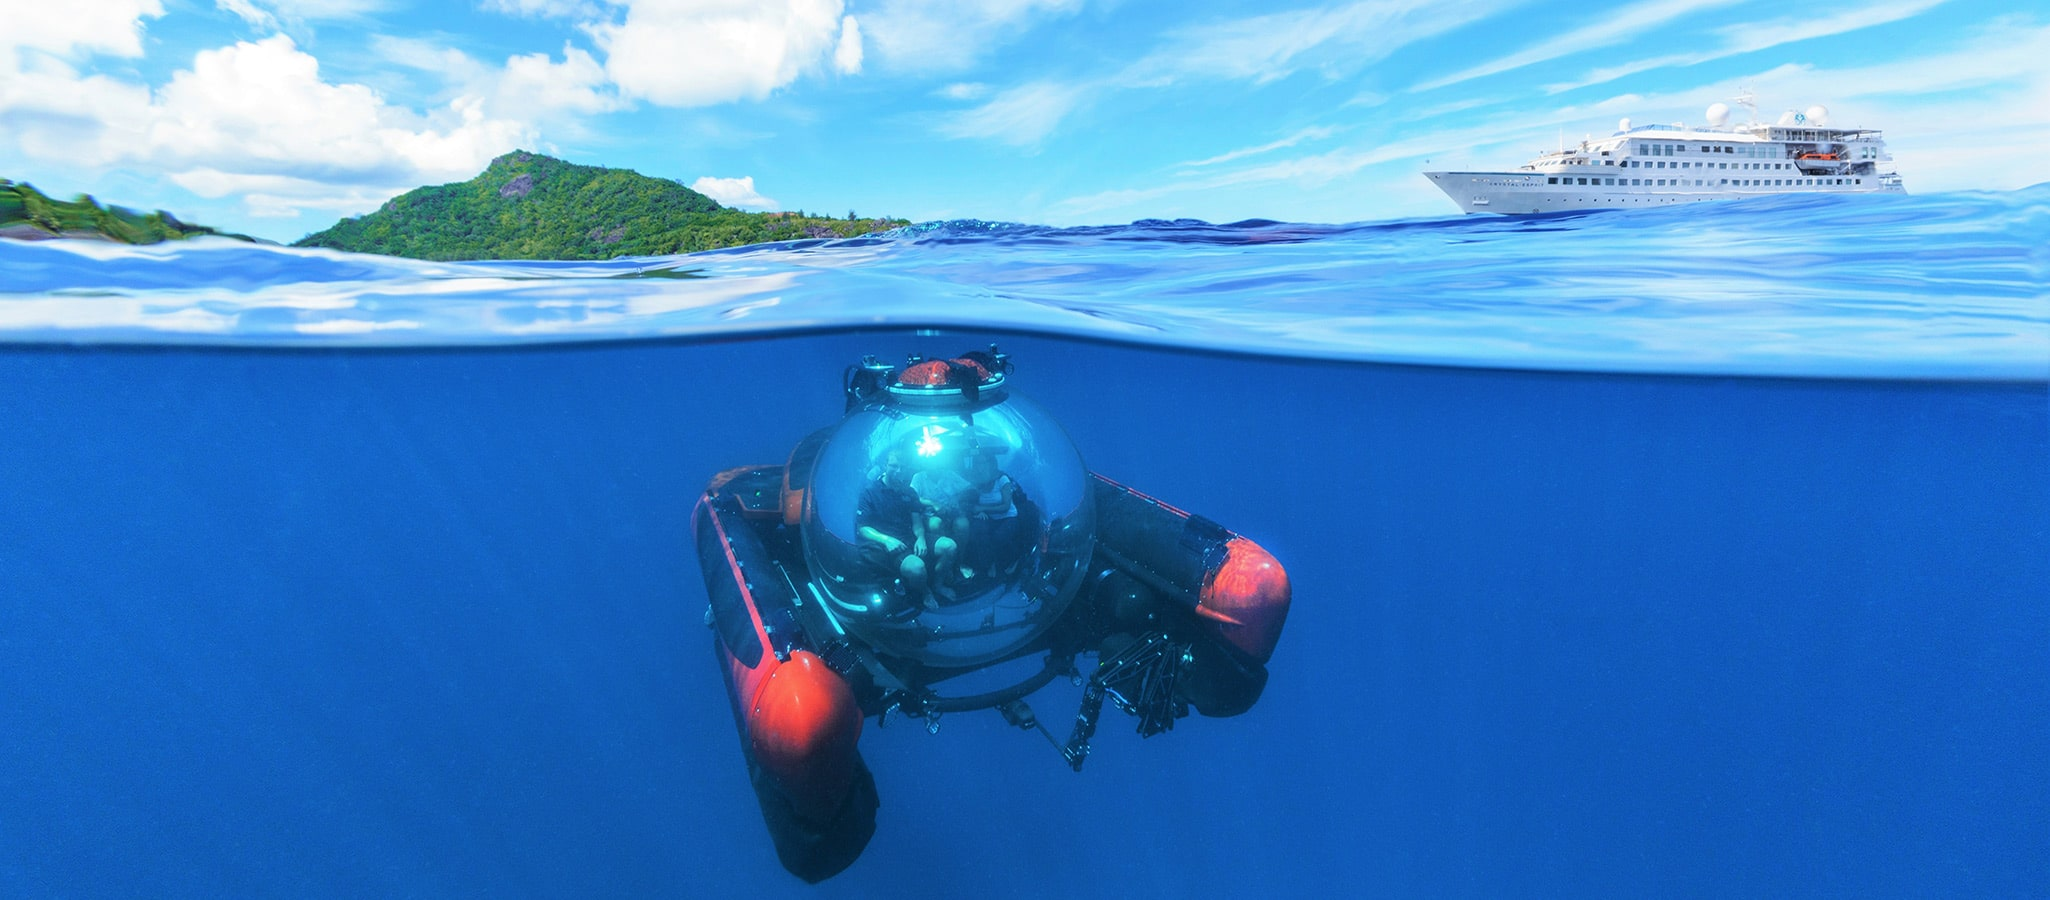 The so-called discovery yachts often carry submersibles that allow for whales watching, dive for wrecks and explore the utterly engrossing underwater world.